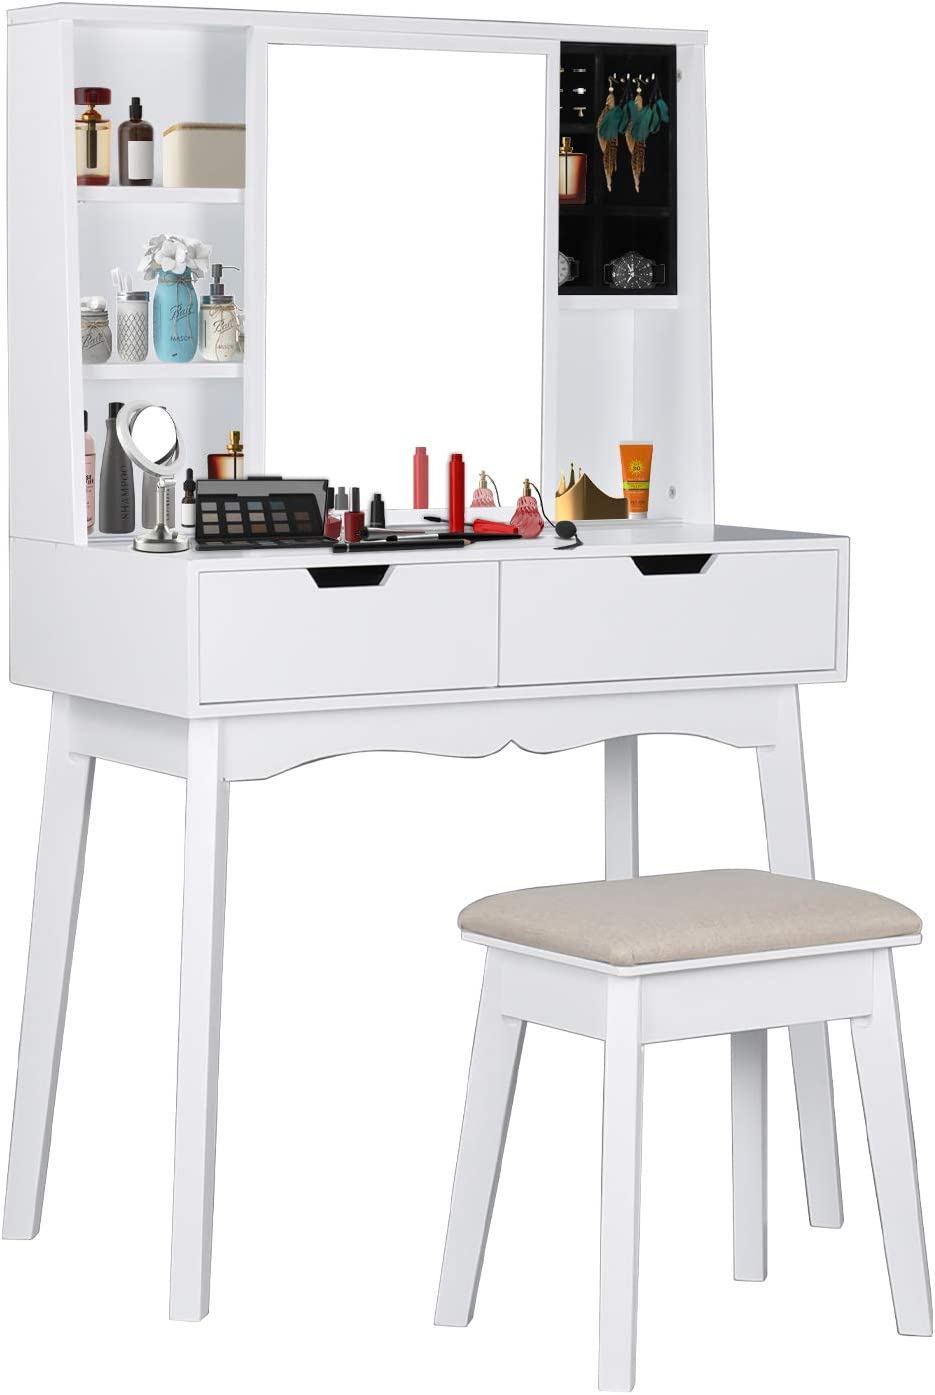 COZUHAUSE White Vanity Table Set with Movable Mirror, Jewelry Cabinet, Detachable Jewelry Storage Box, Cushioning Stool, 2 Drawer Dressing Table White